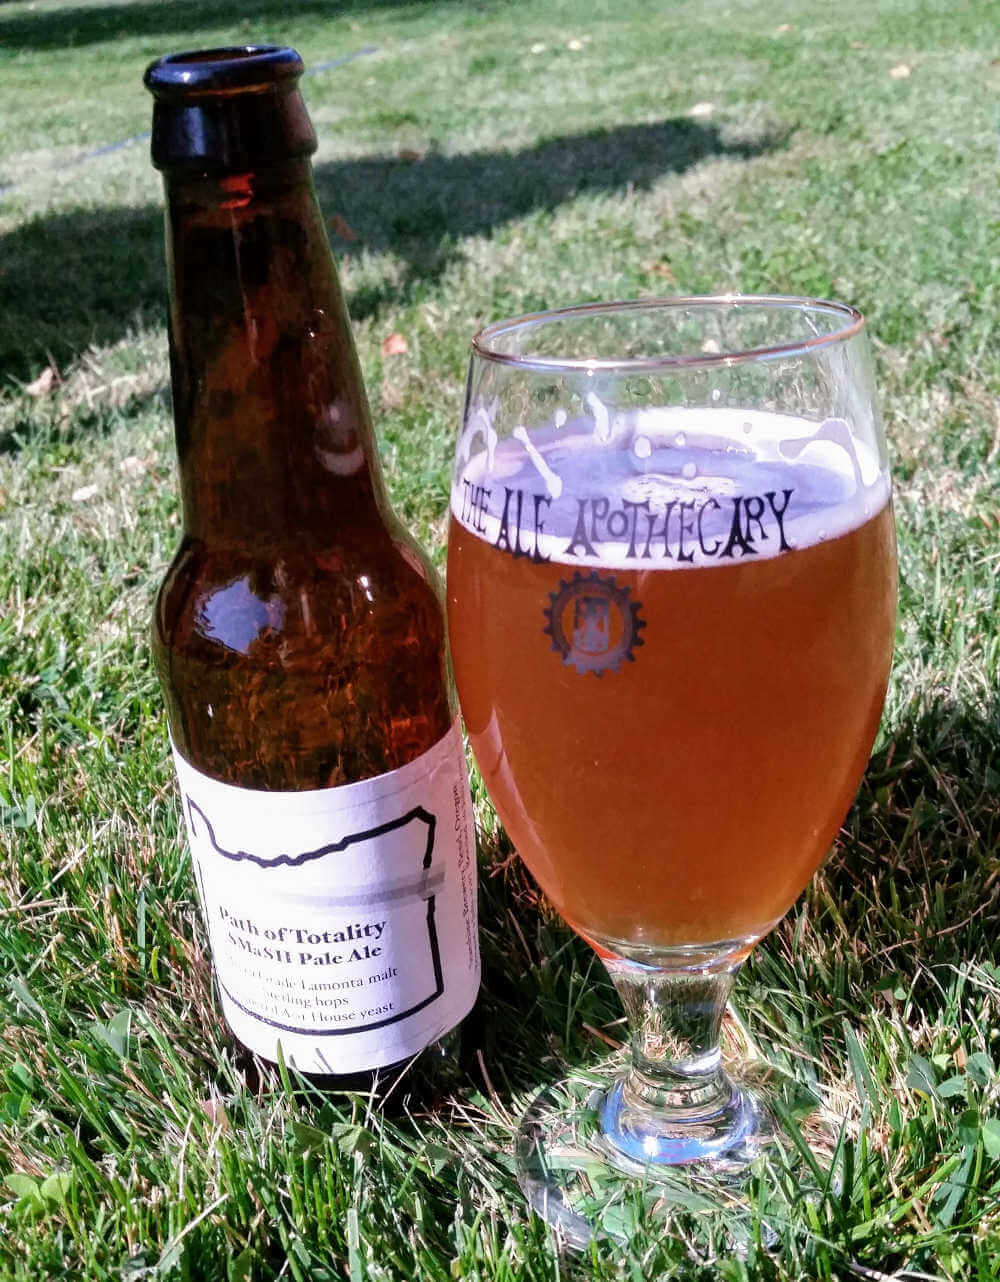 Path of Totality SMaSH Pale Ale